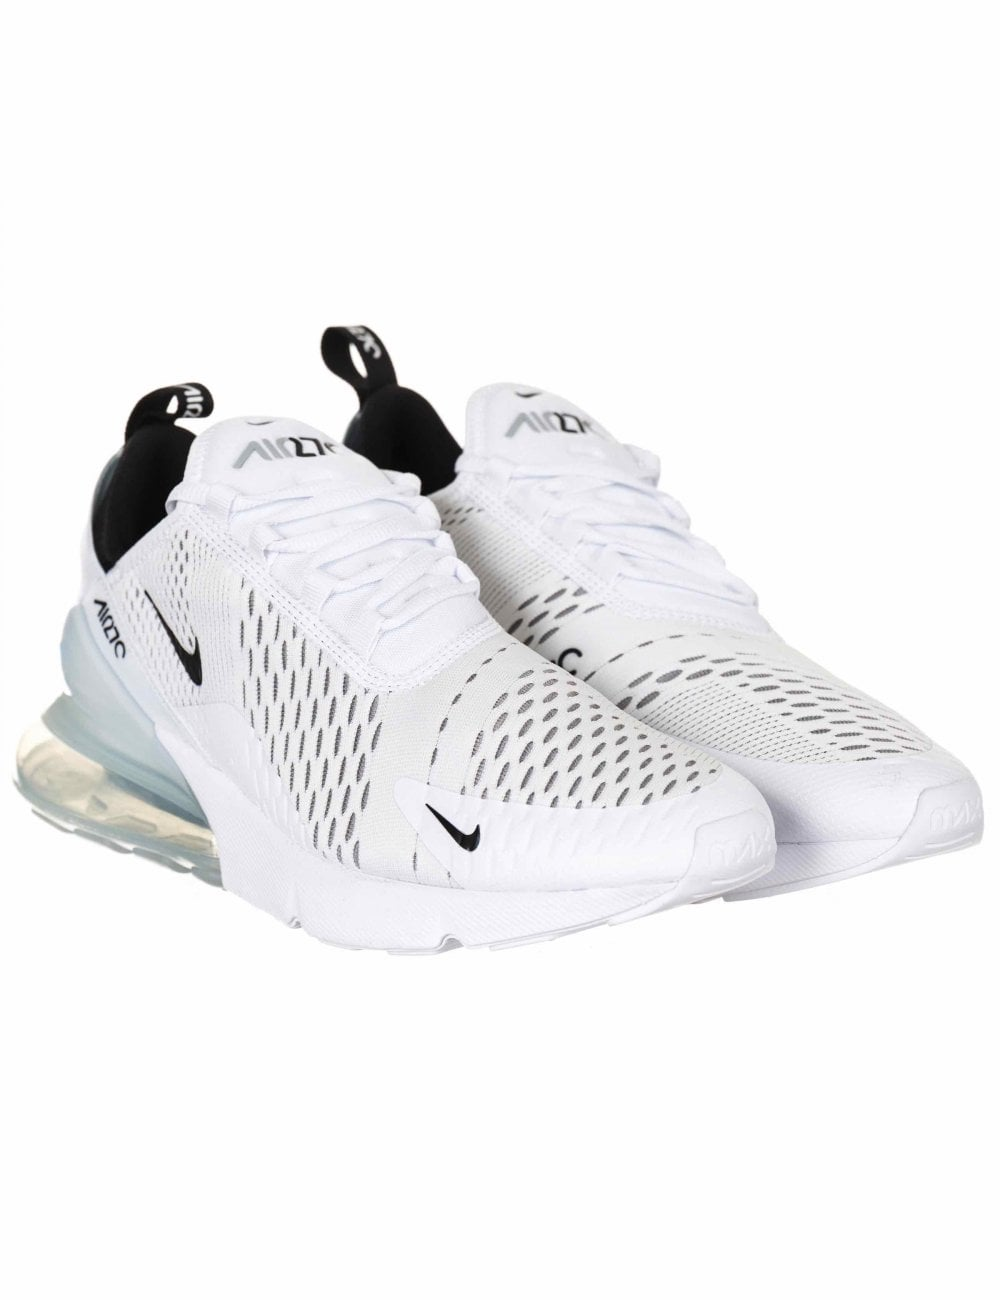 buy popular 078a2 6daaf Air Max 270 Trainers - White/Black